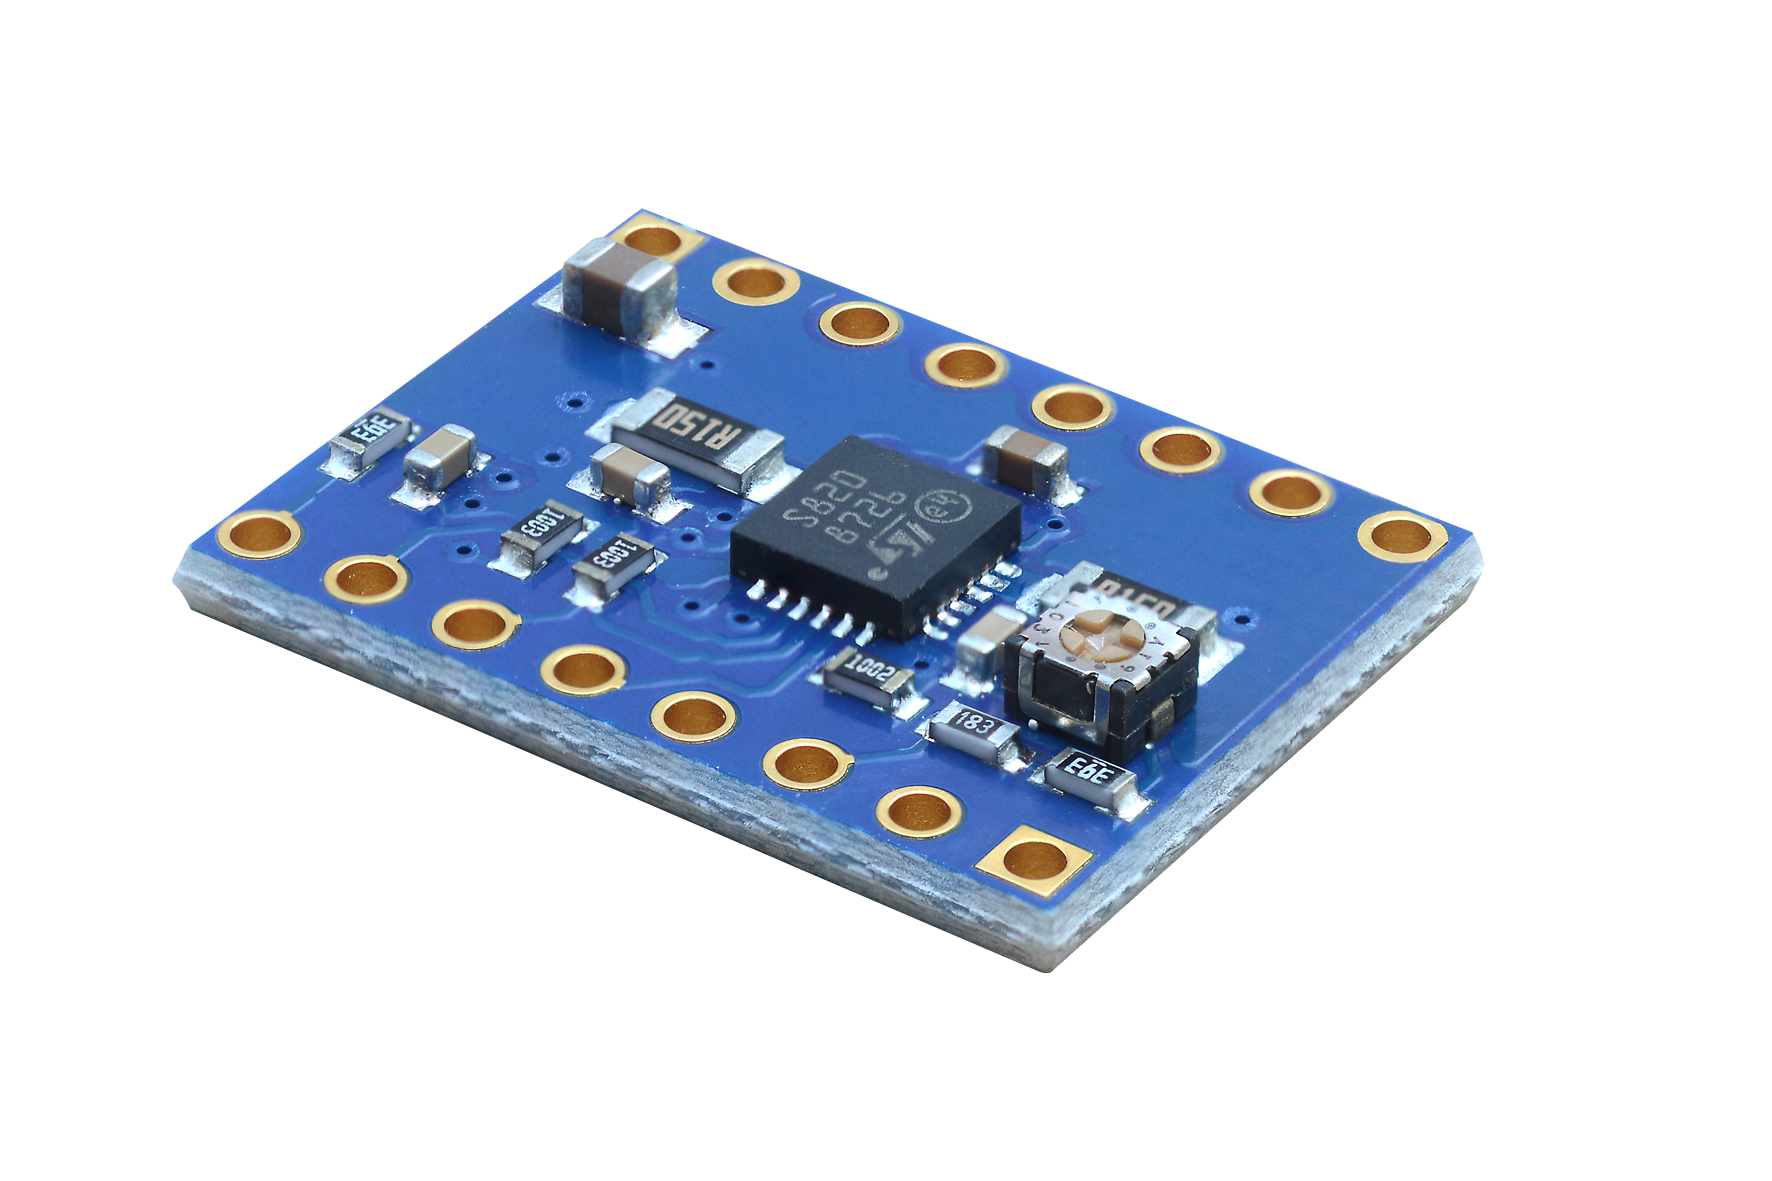 Evaluation board for STSPIN820 stepper motor driver